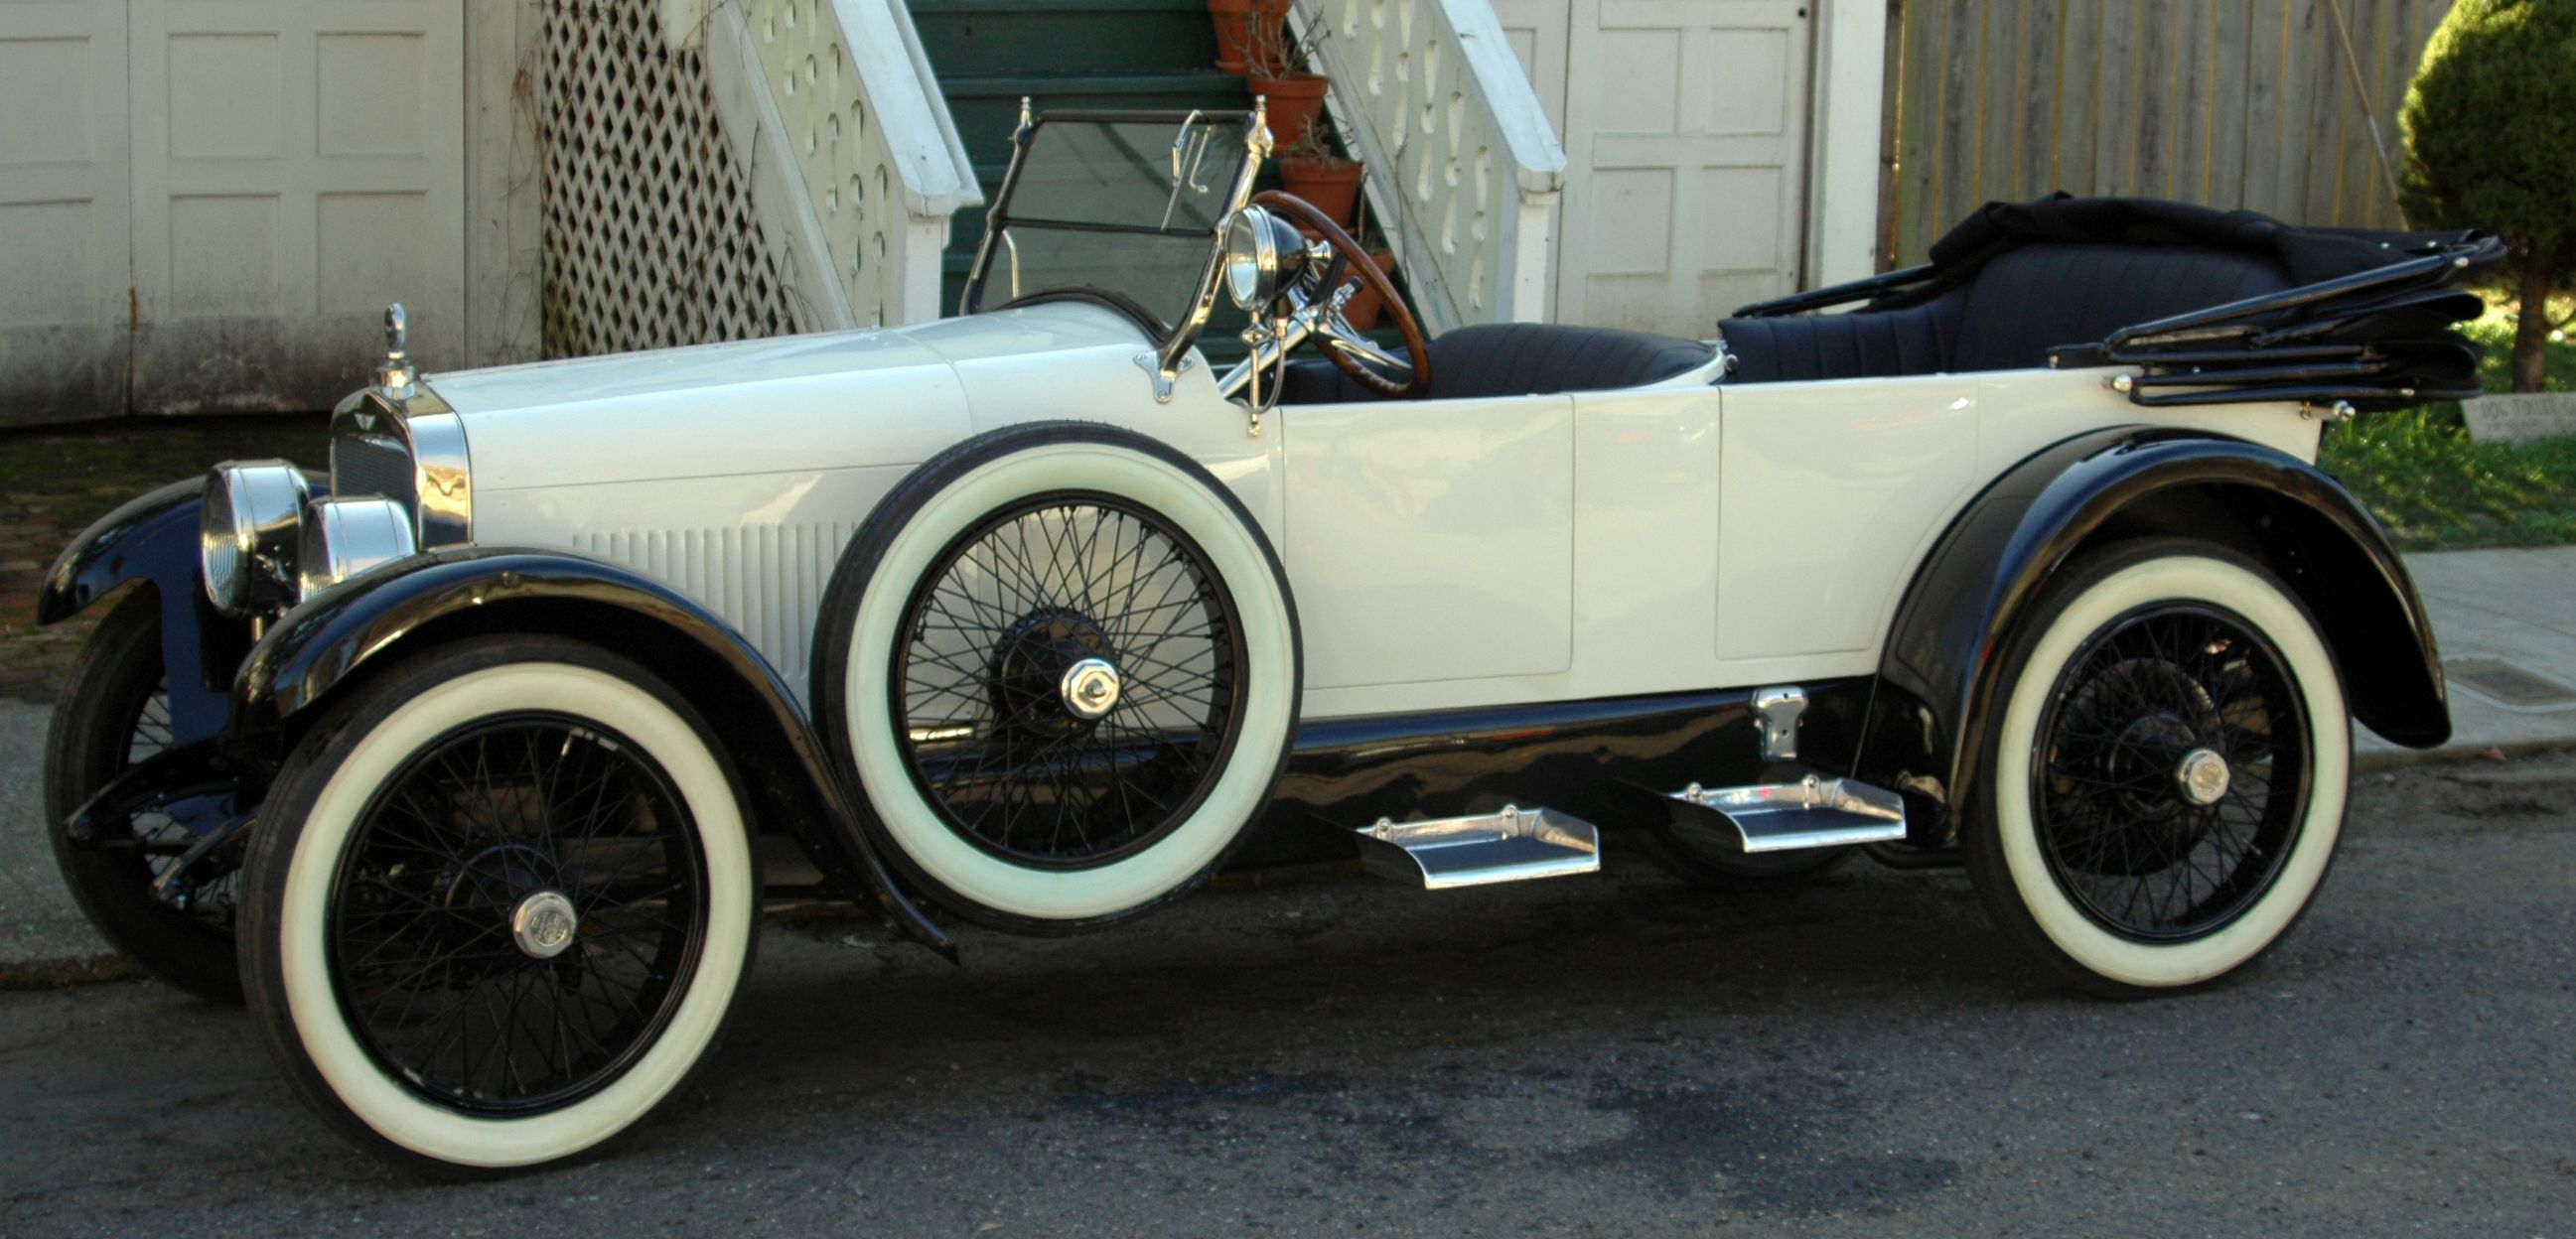 1921 HCS Type 3 Four Passenger Touring - After Harry C. Stutz sold ...